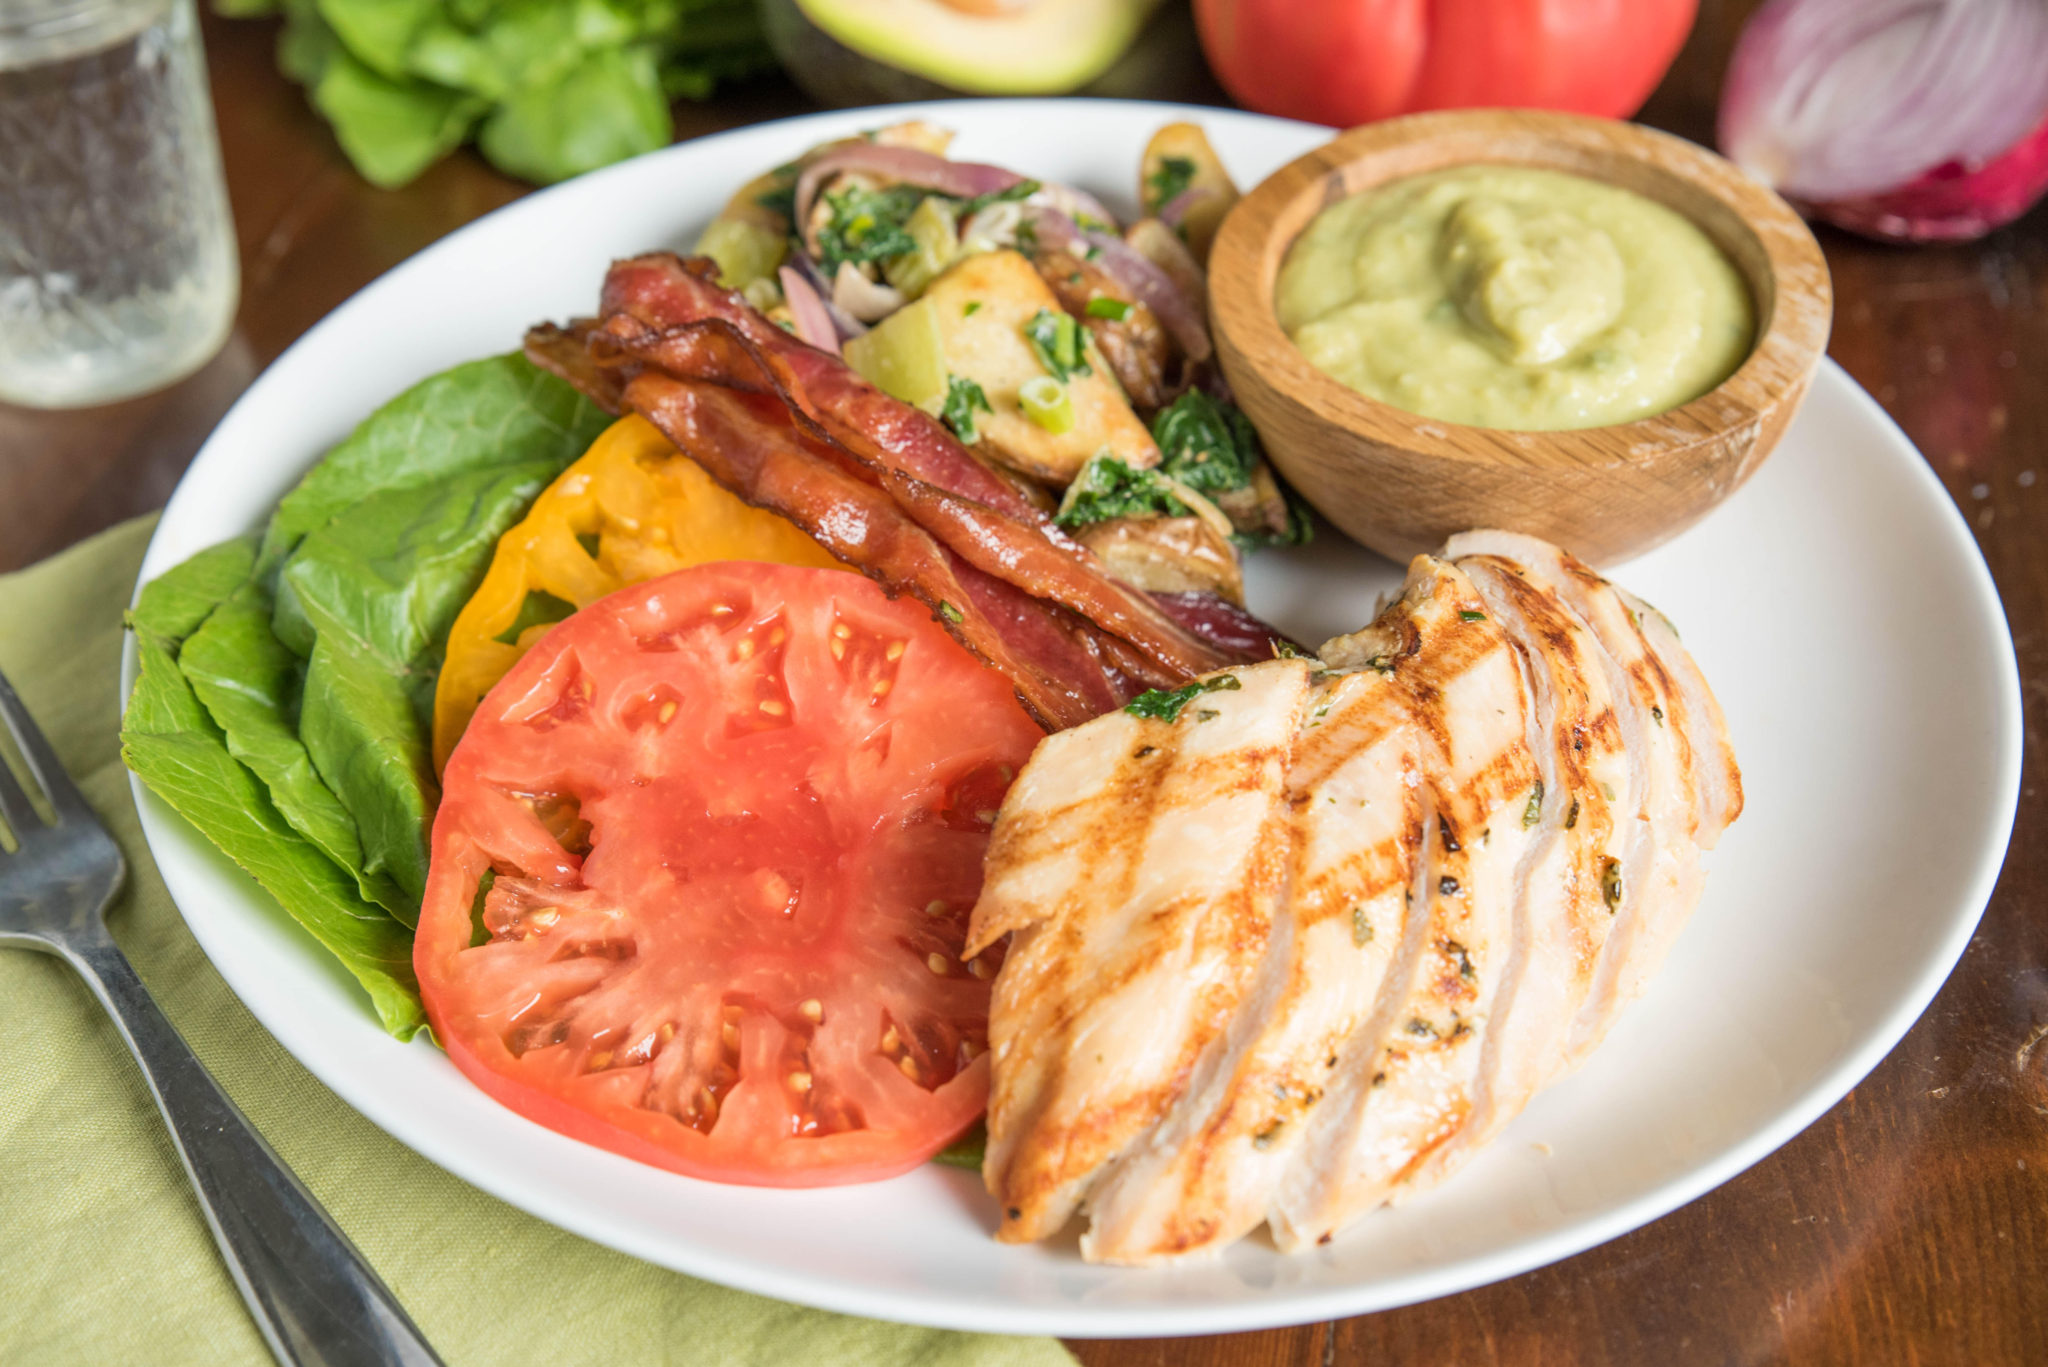 healthy hacks: Grilled BLT (with the heirloom tomato mentioned)